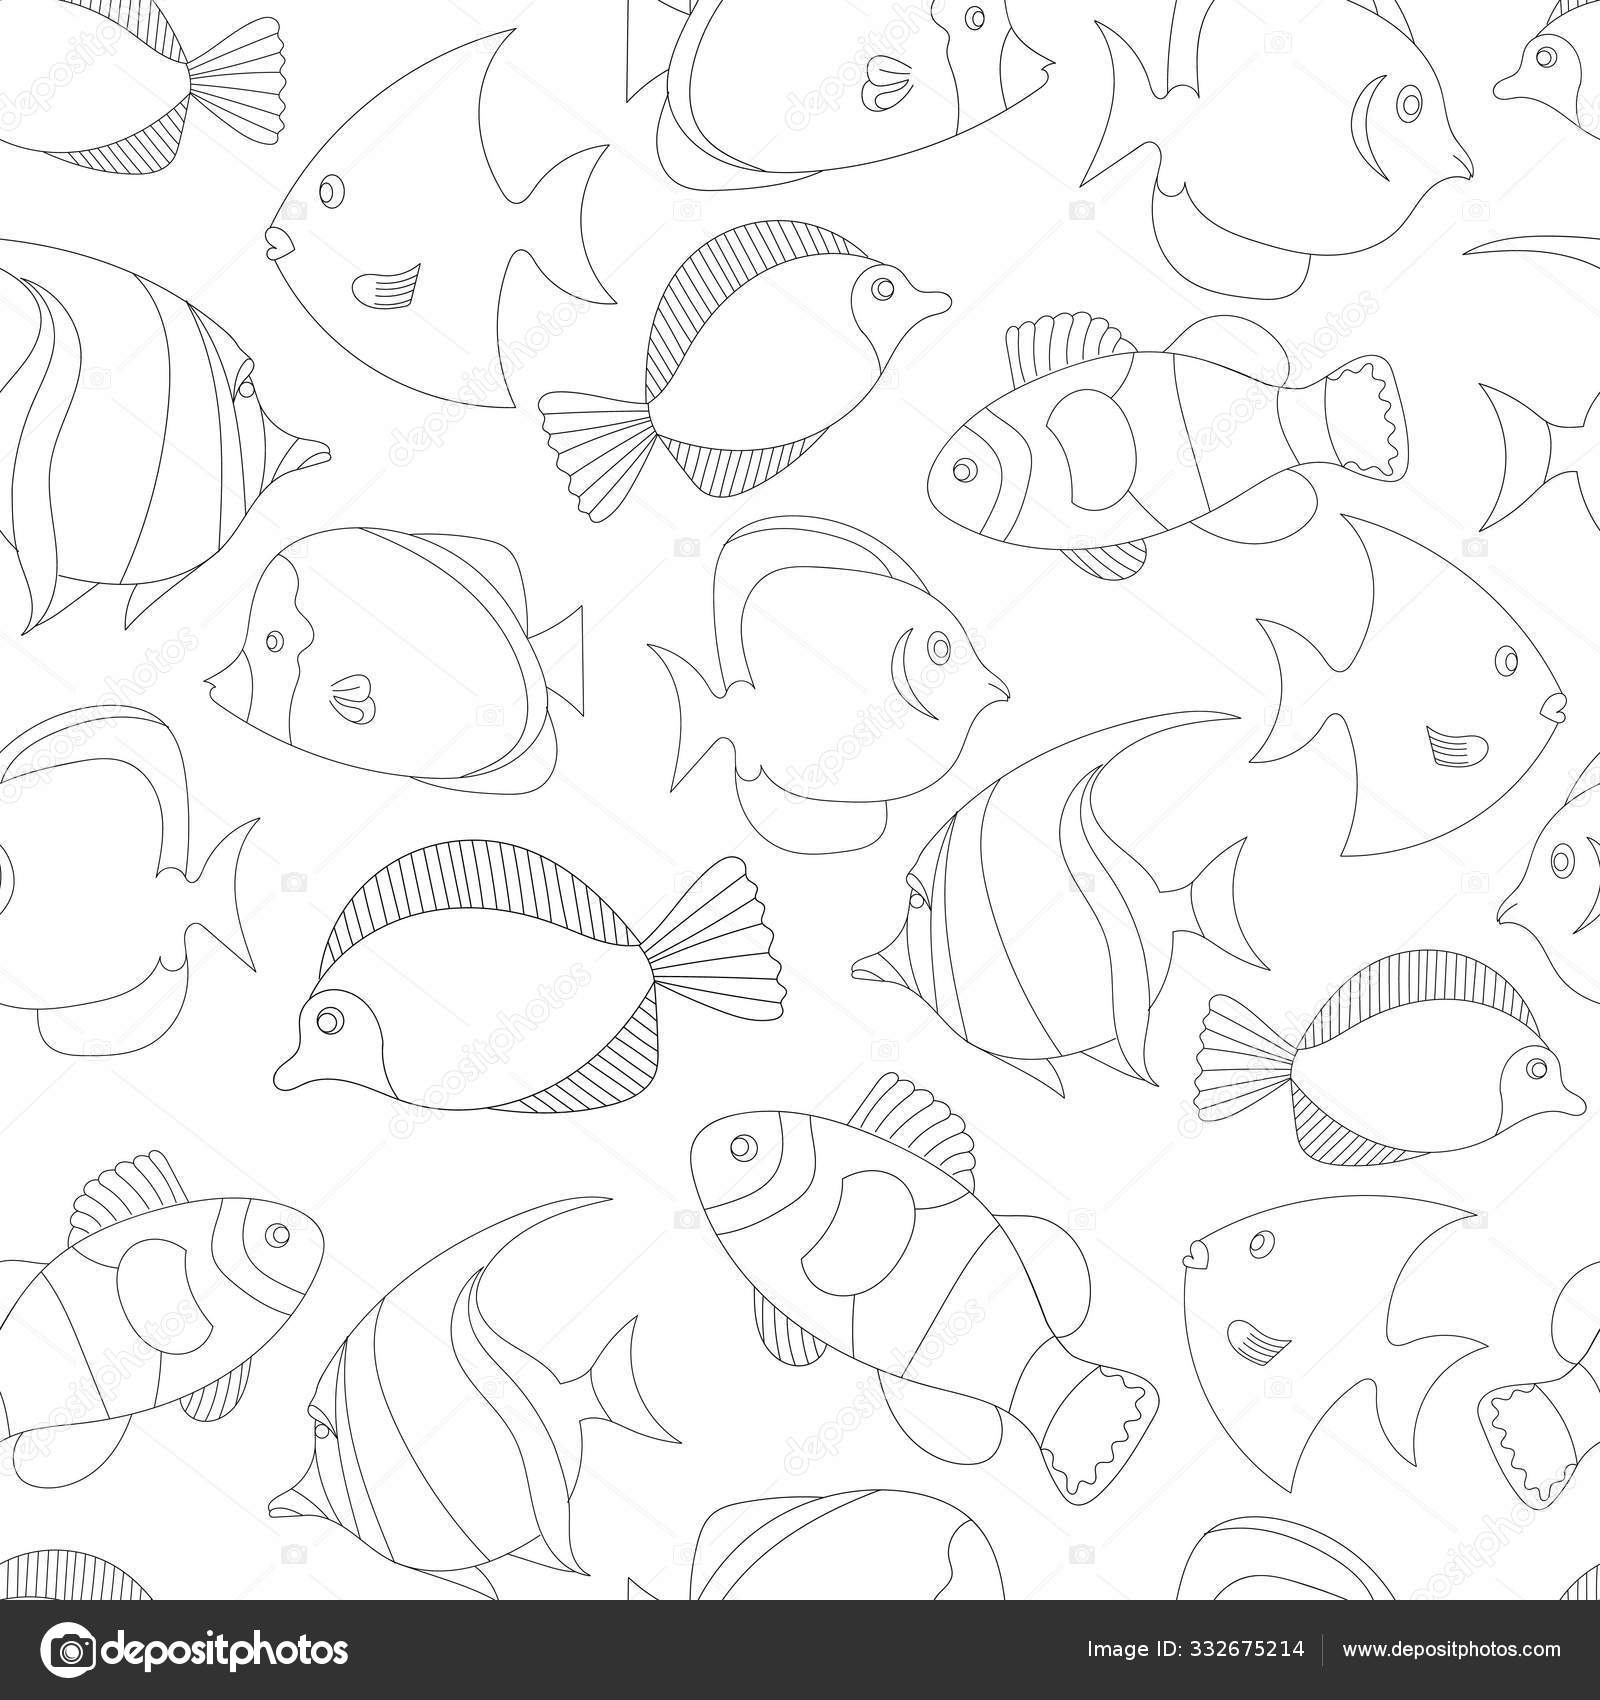 Seamless Pattern With Black And White Tropical Fish Exotic Fish Coloring Book Page For Adult And Cids Monochrome Hand Drawn Line Work Vector Illustration Suitable For Wrapping Paper And Clothing Vector